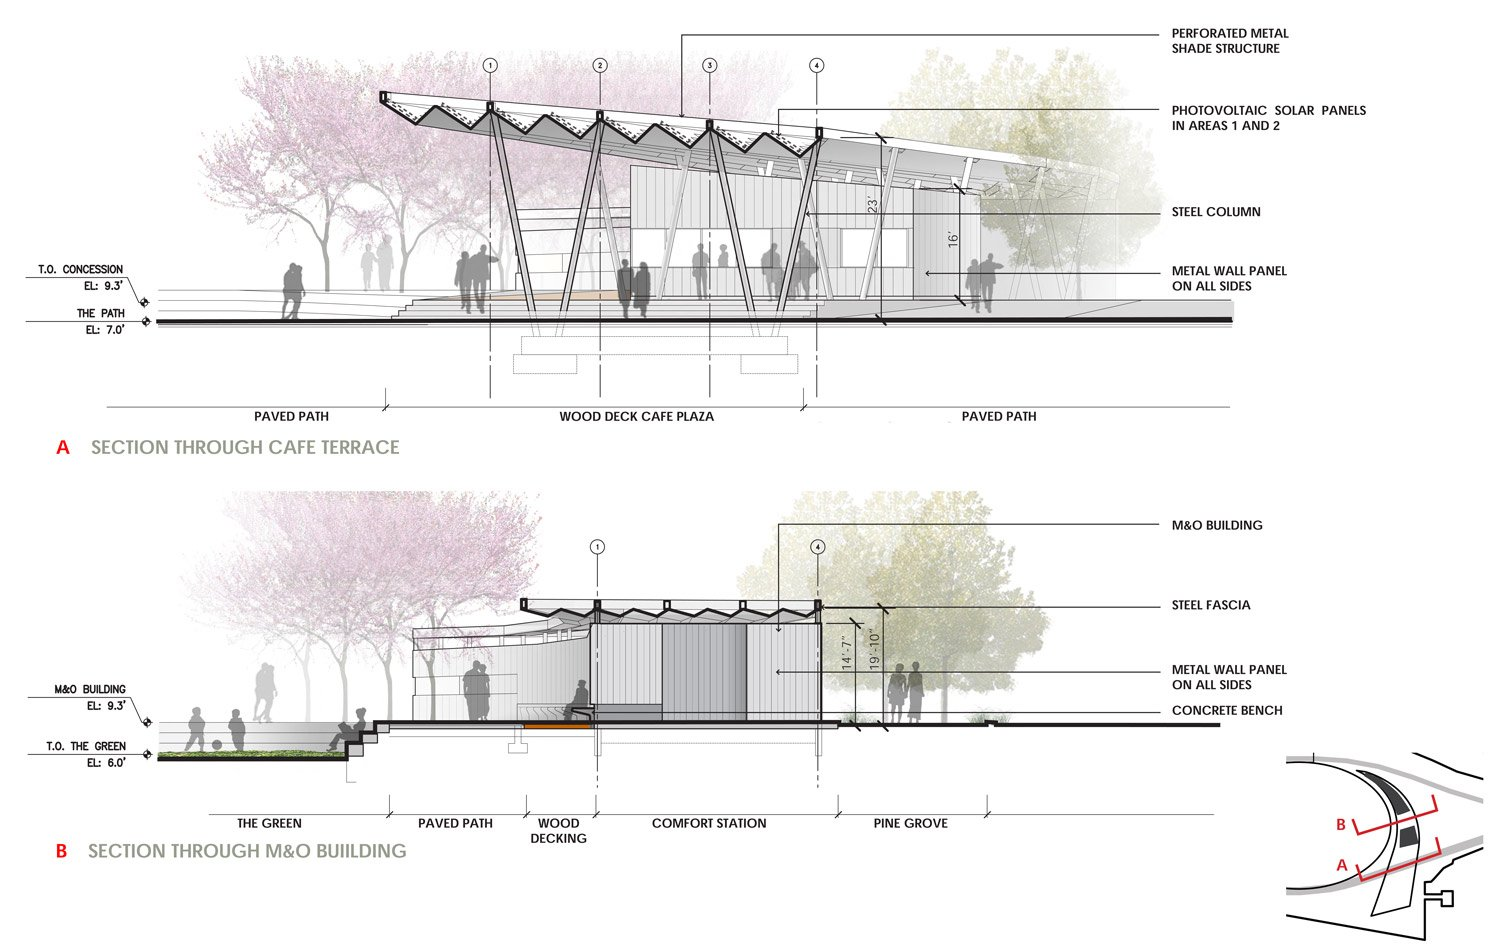 PAVILION SECTION Courtesy of SWA/Balsley and WEISS/MANFREDI}